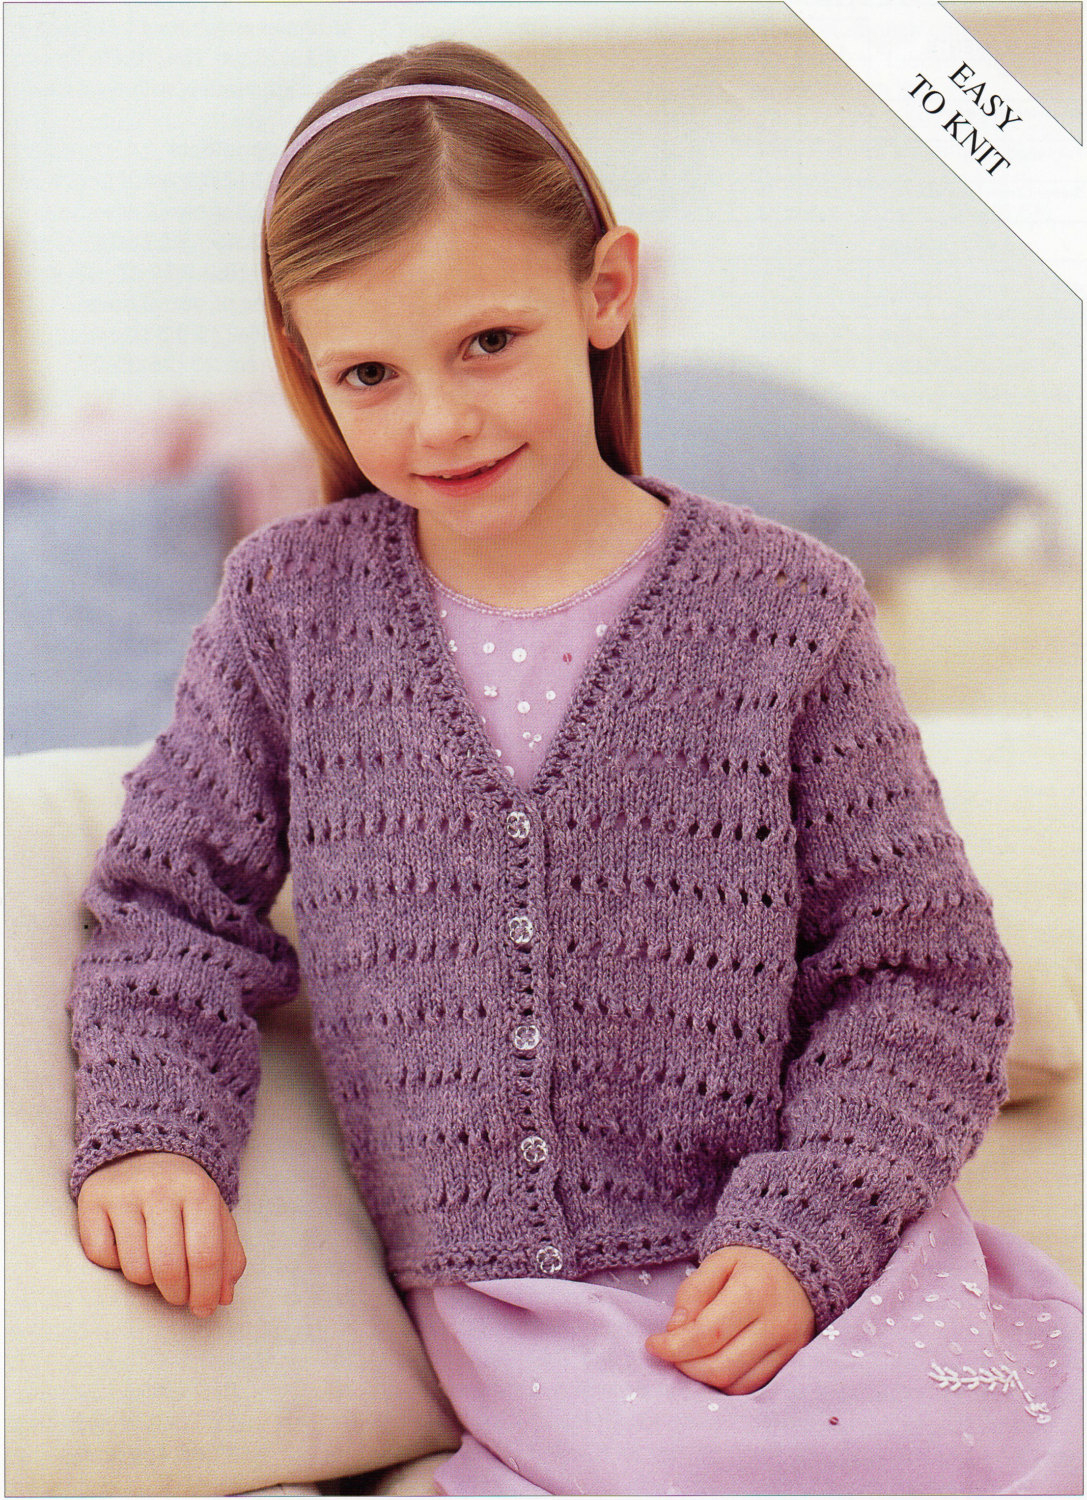 Knitted Childrens Sweaters Free Patterns Girls Knitting Pattern Girls Cardigan Childs Cardigan Easy Knit V Neck Cardigan 22 32inch Dk Childrens Knitting Pattern Pdf Instant Download